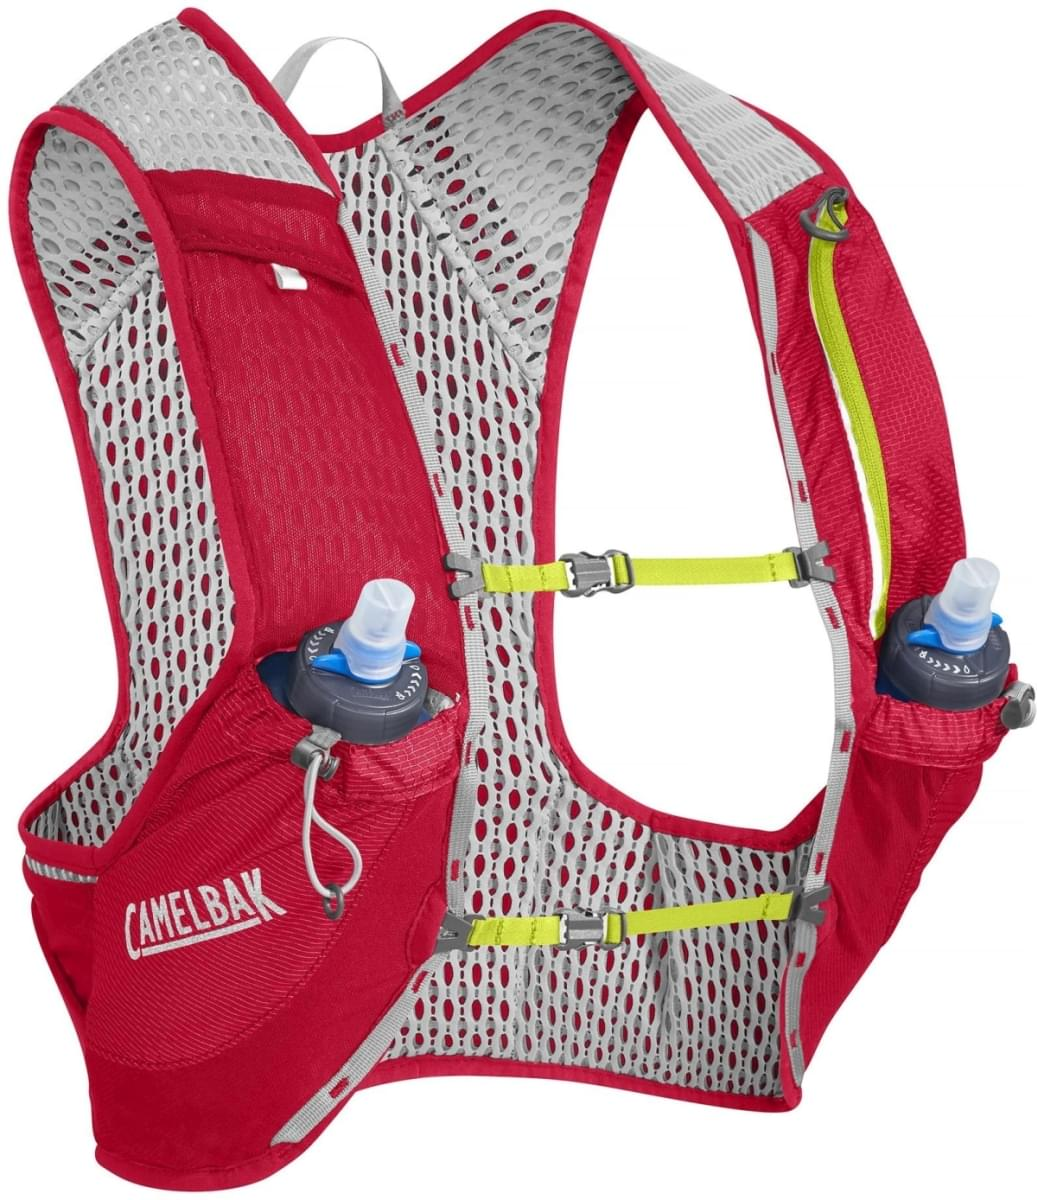 Camelbak Nano Vest - Crimson Red/Lime Punch S